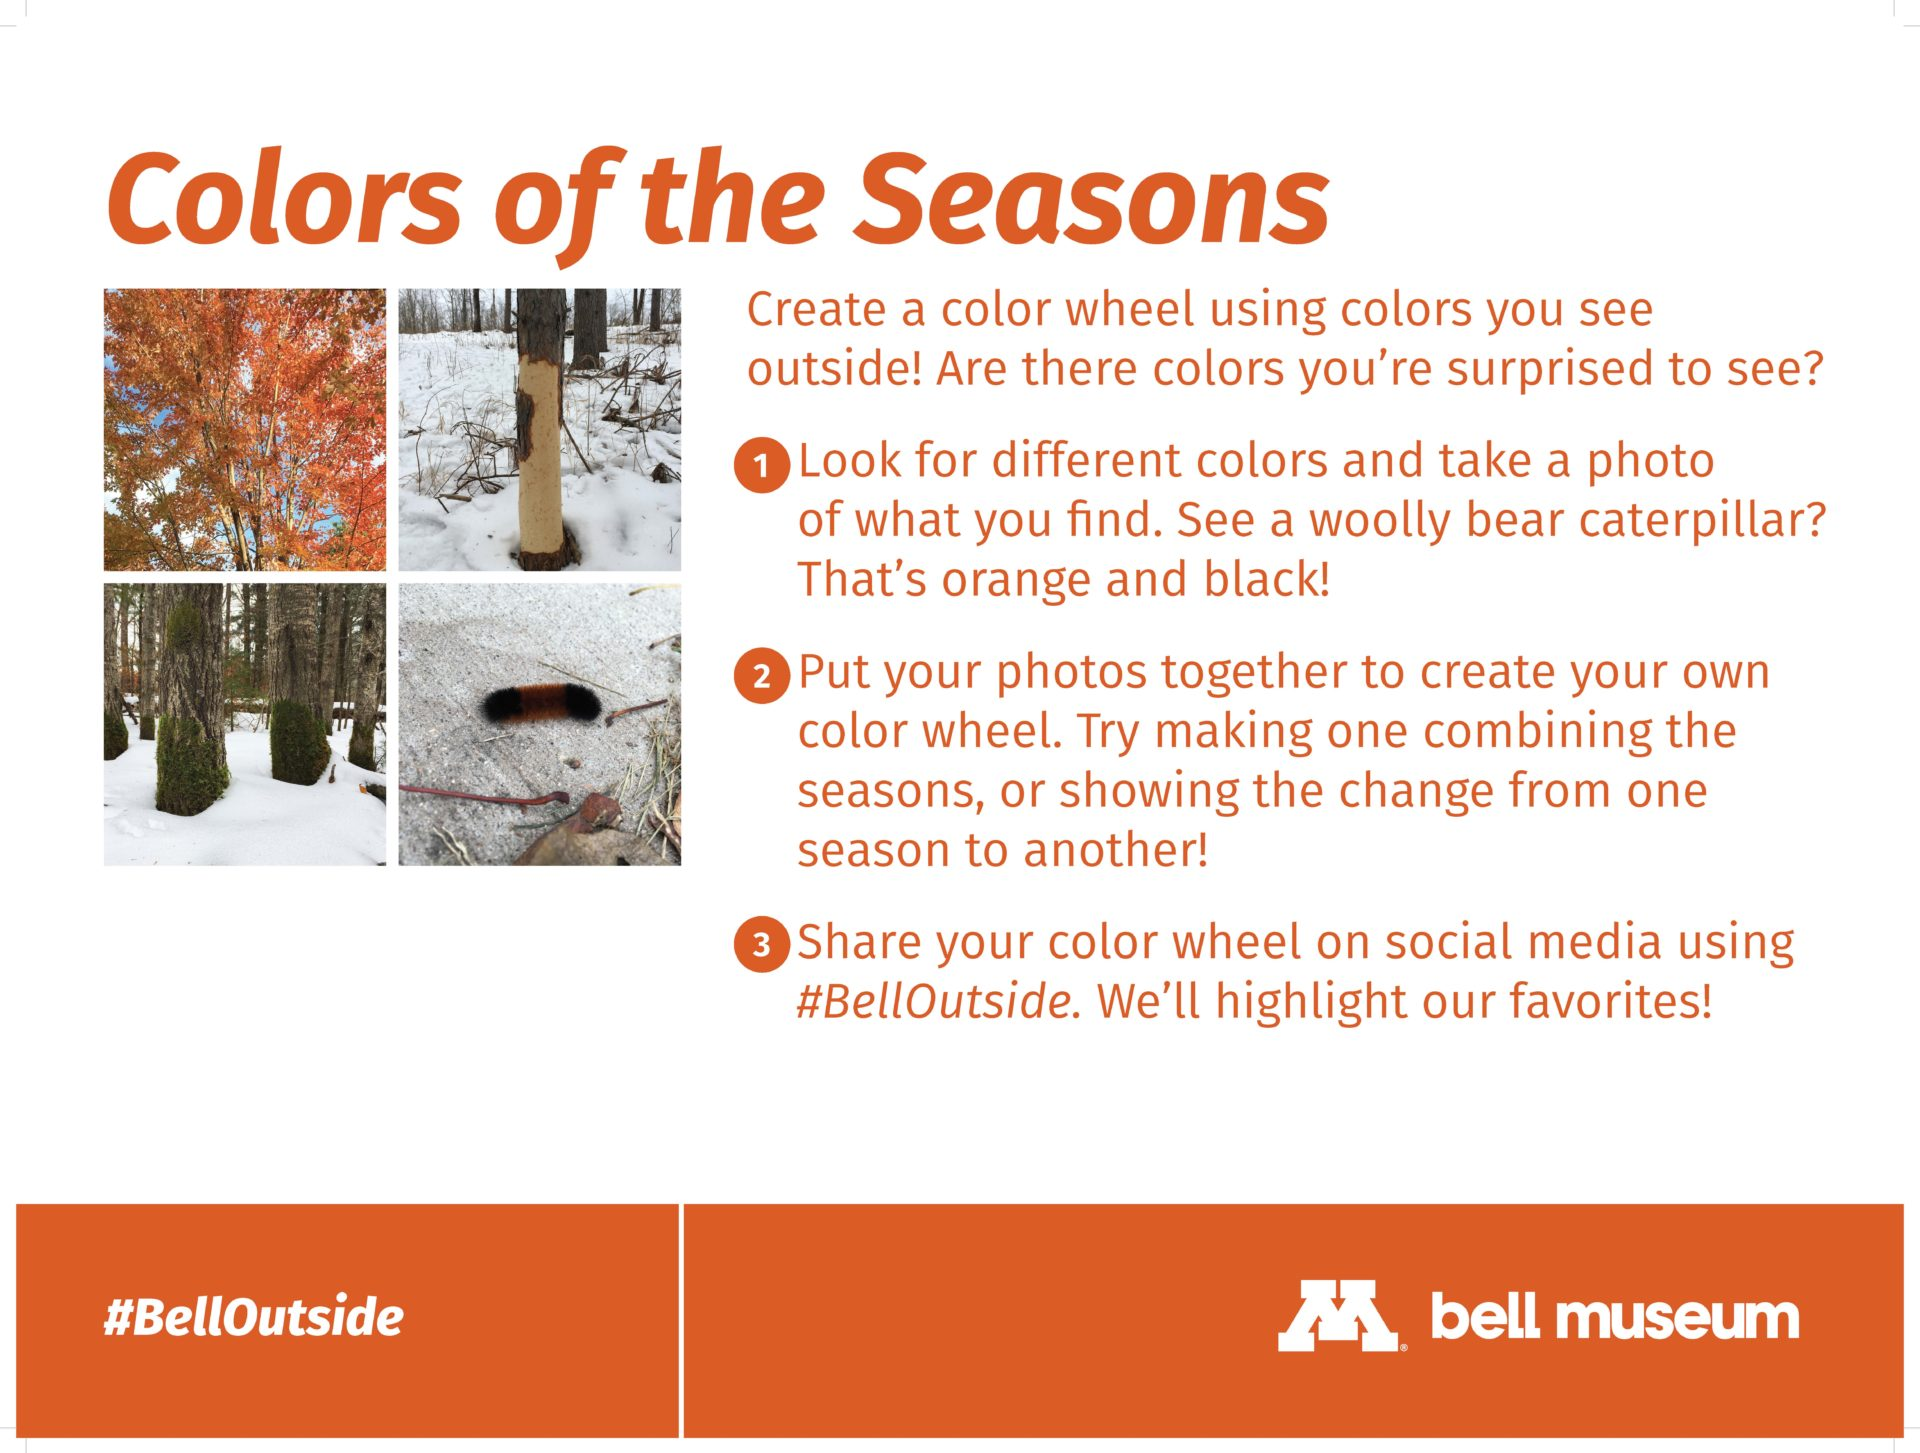 Colors of the Seasons. Create a color wheel using colors you see outside! Are there colors you're surprised to see?